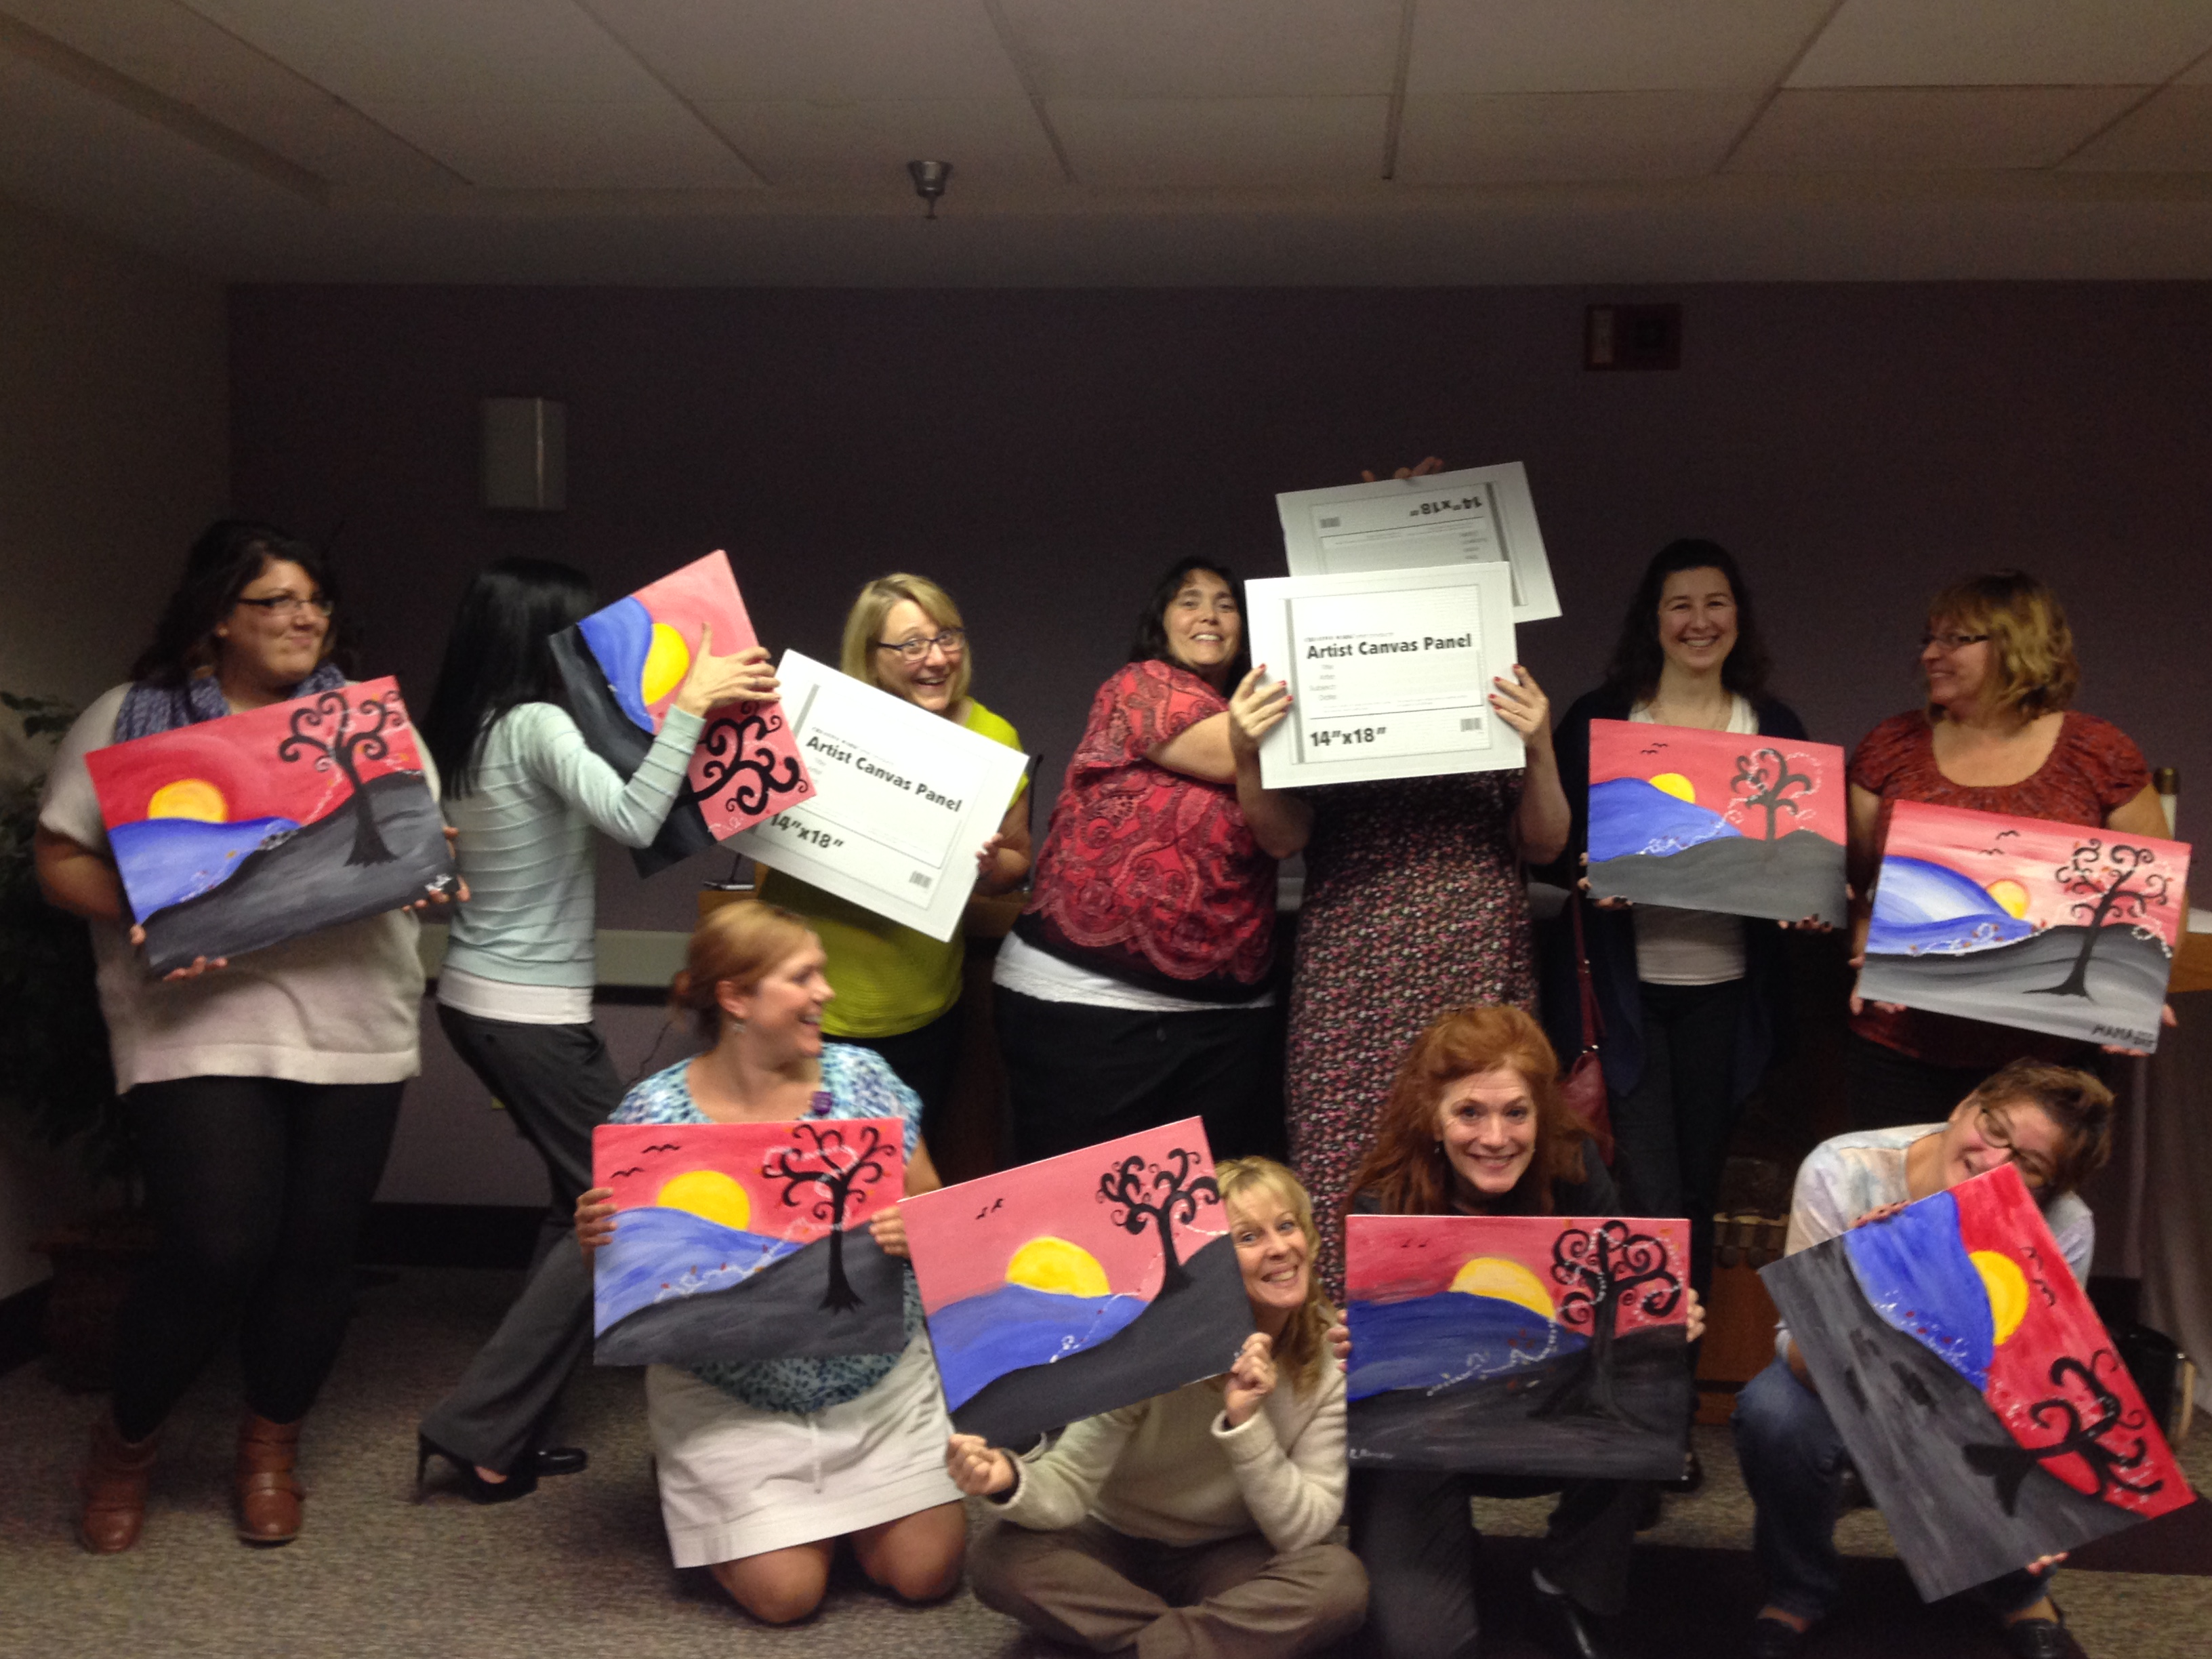 LHS Health Systems Painting Party 10-12-2015